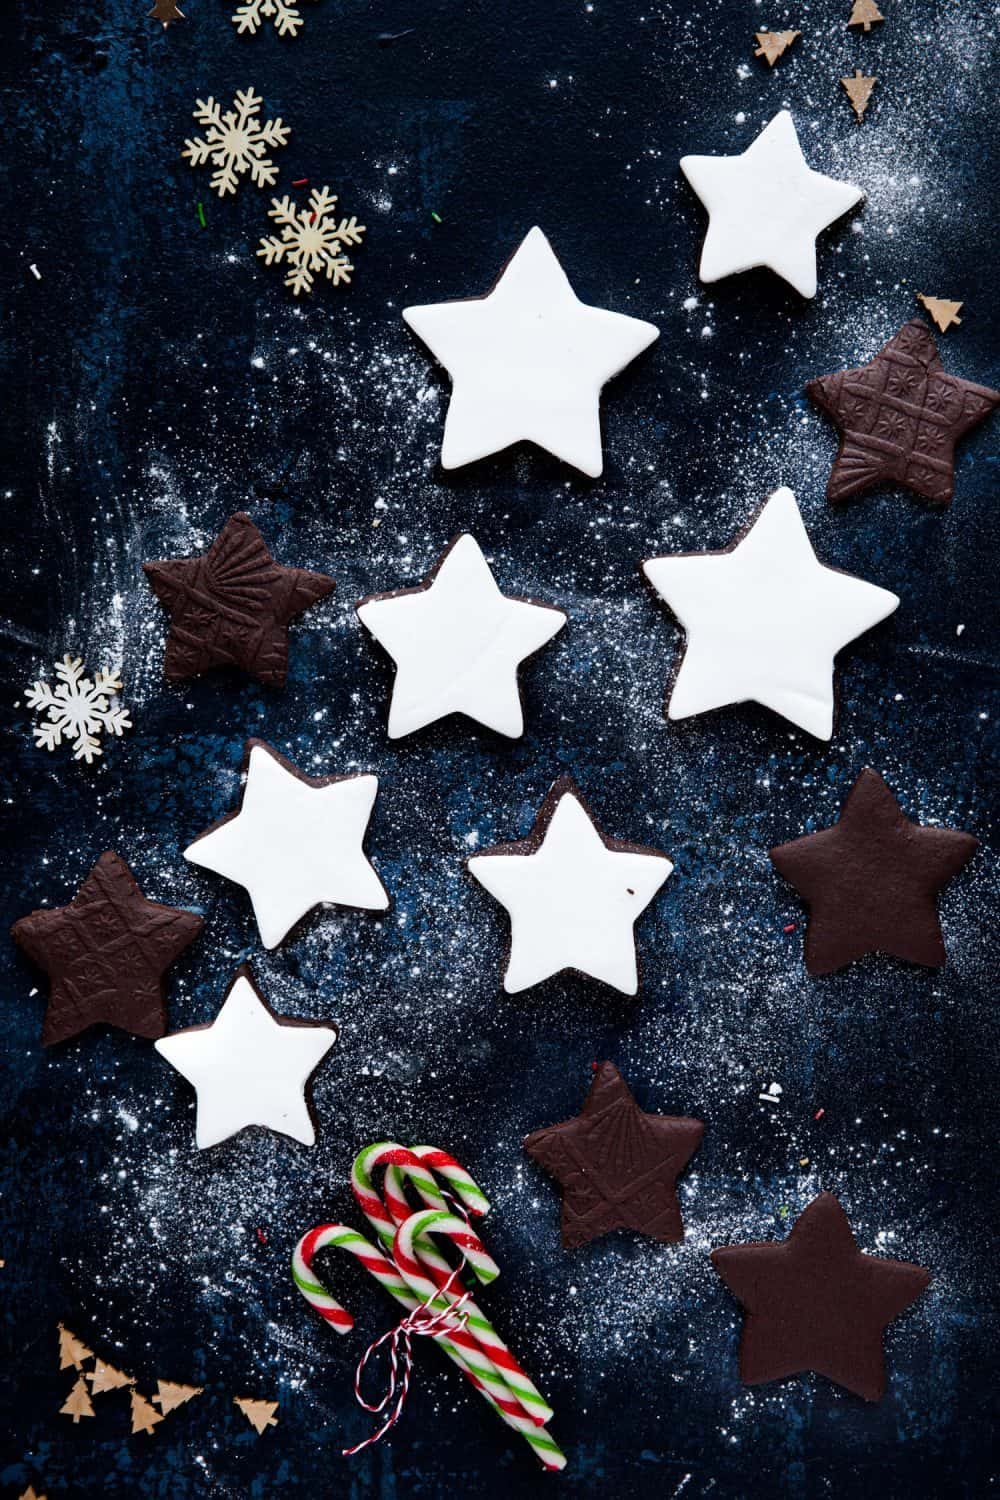 A selection of chocolate biscuits in star shapes. Some are plain and others have been covered in white fondant icing.